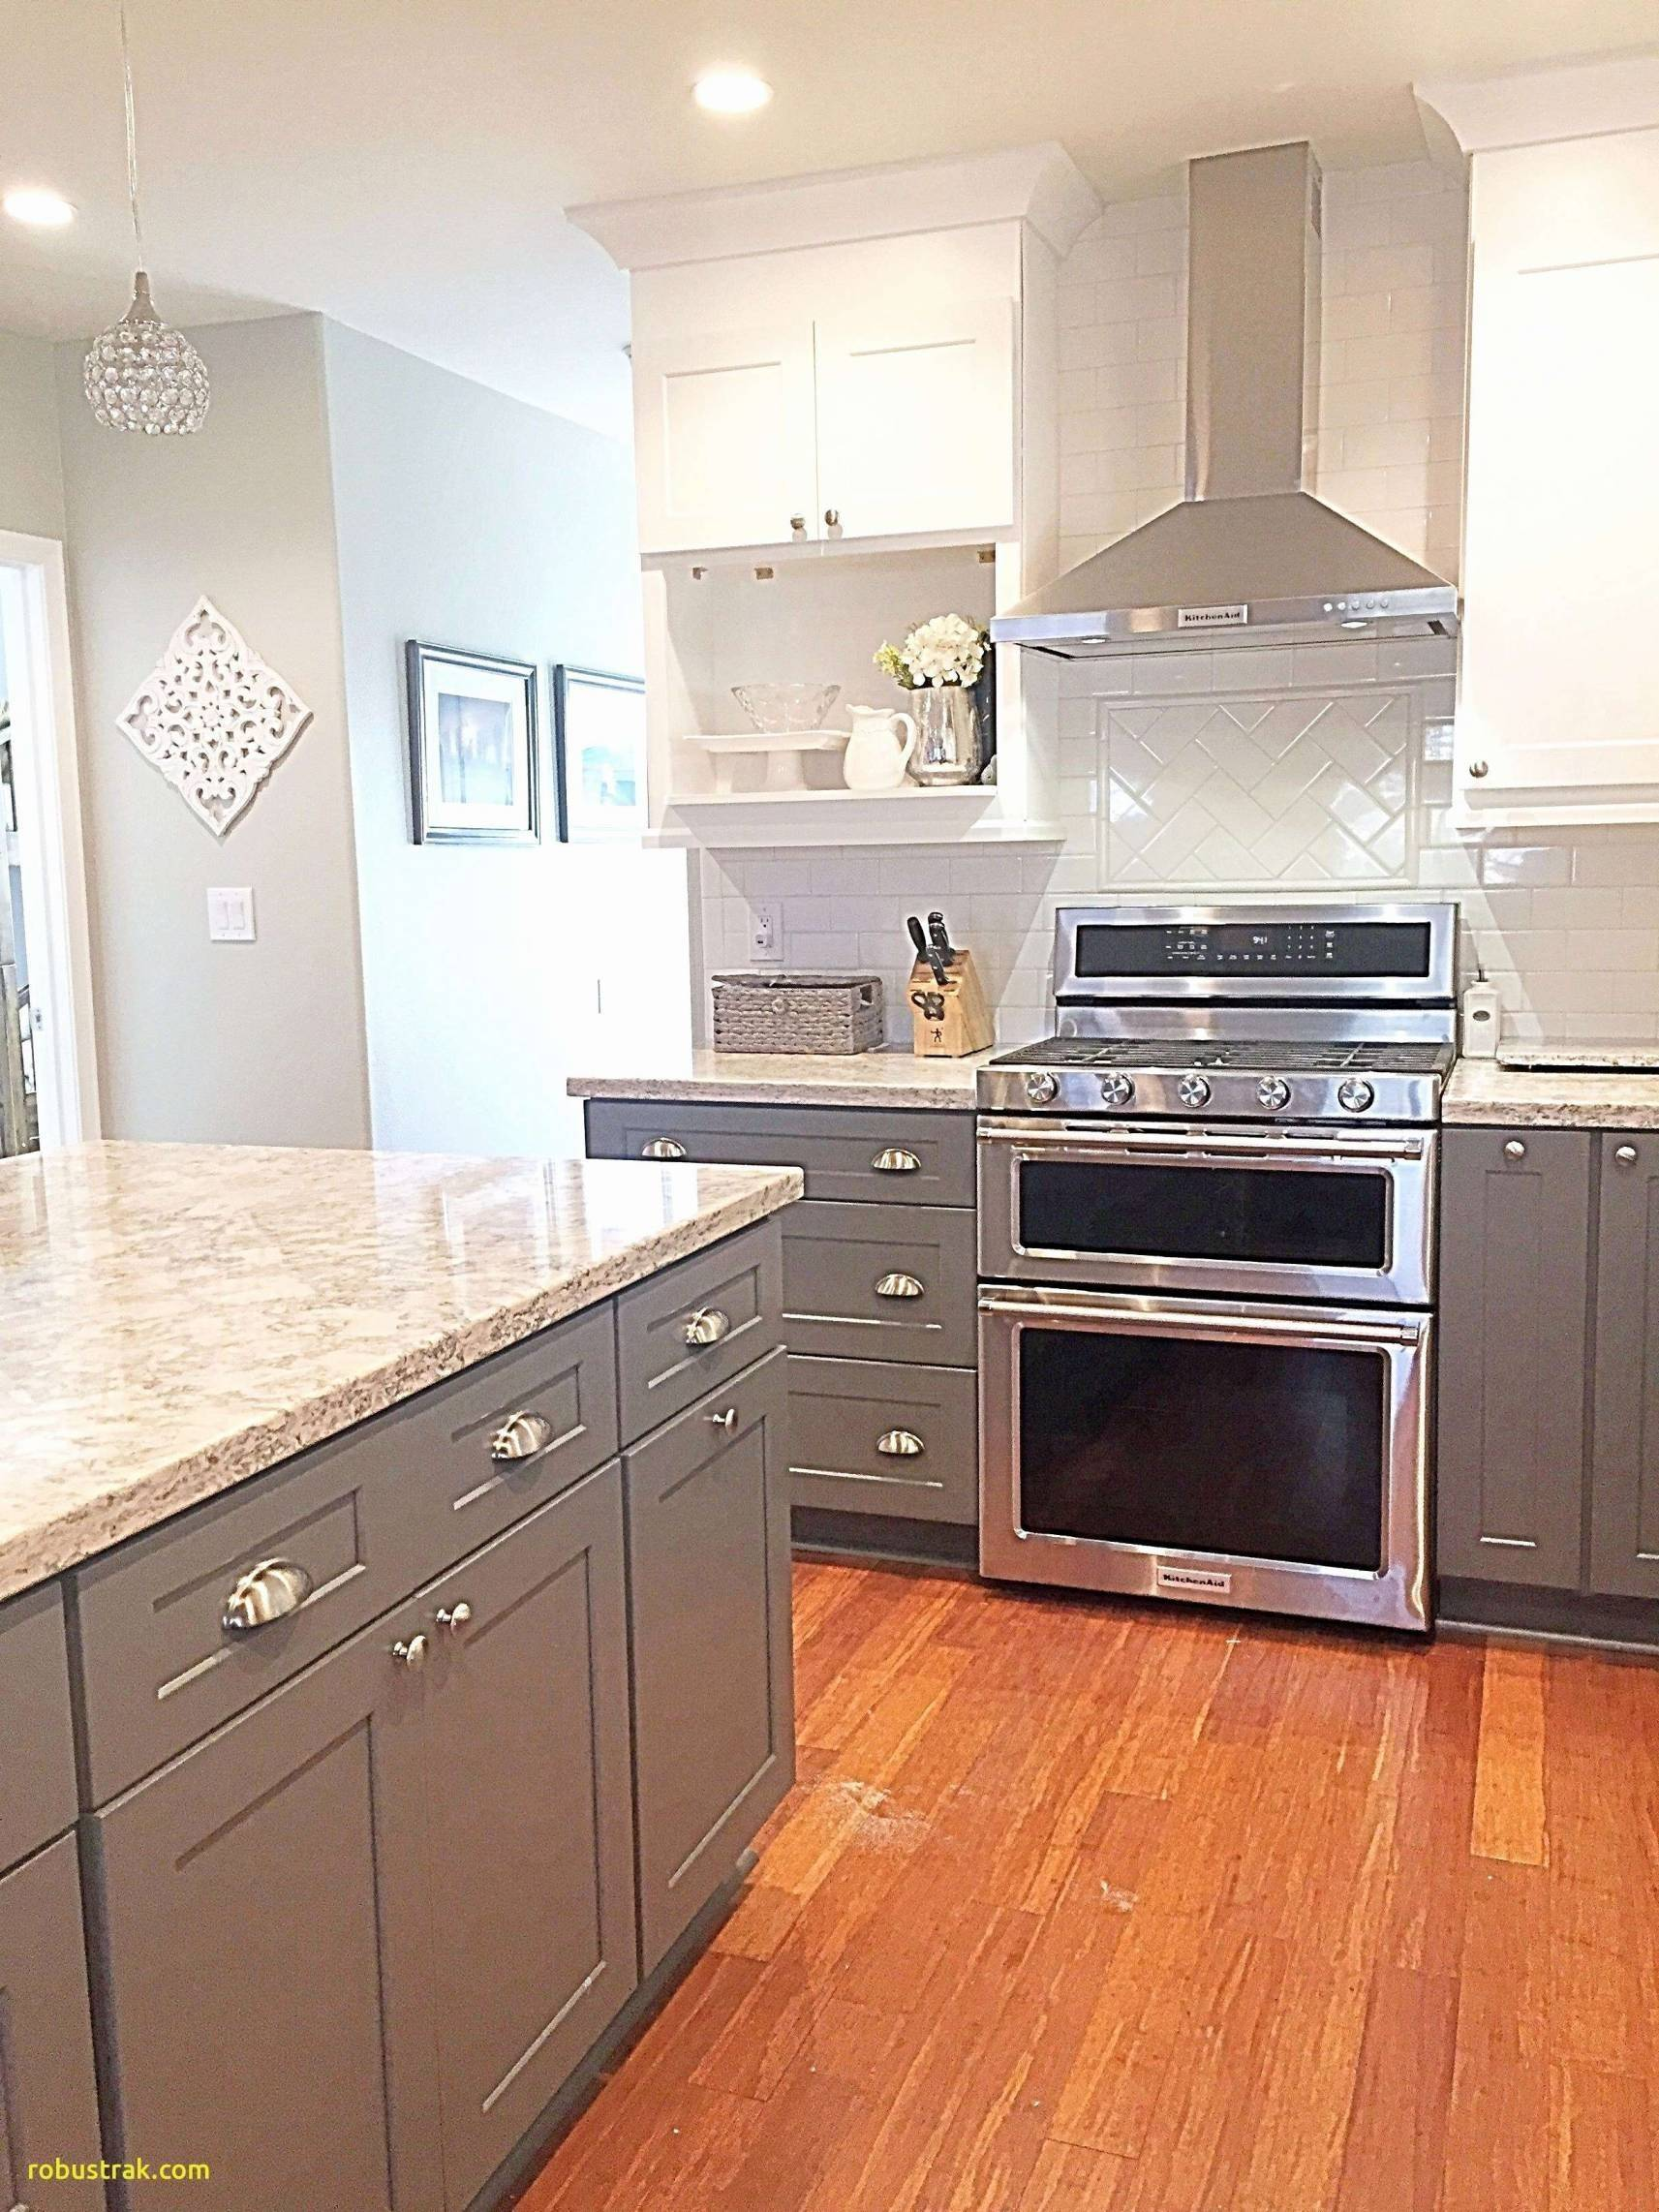 light grey painted kitchen cabinets fresh wondrous best gray paint colors for kitchen of light grey painted kitchen cabinets